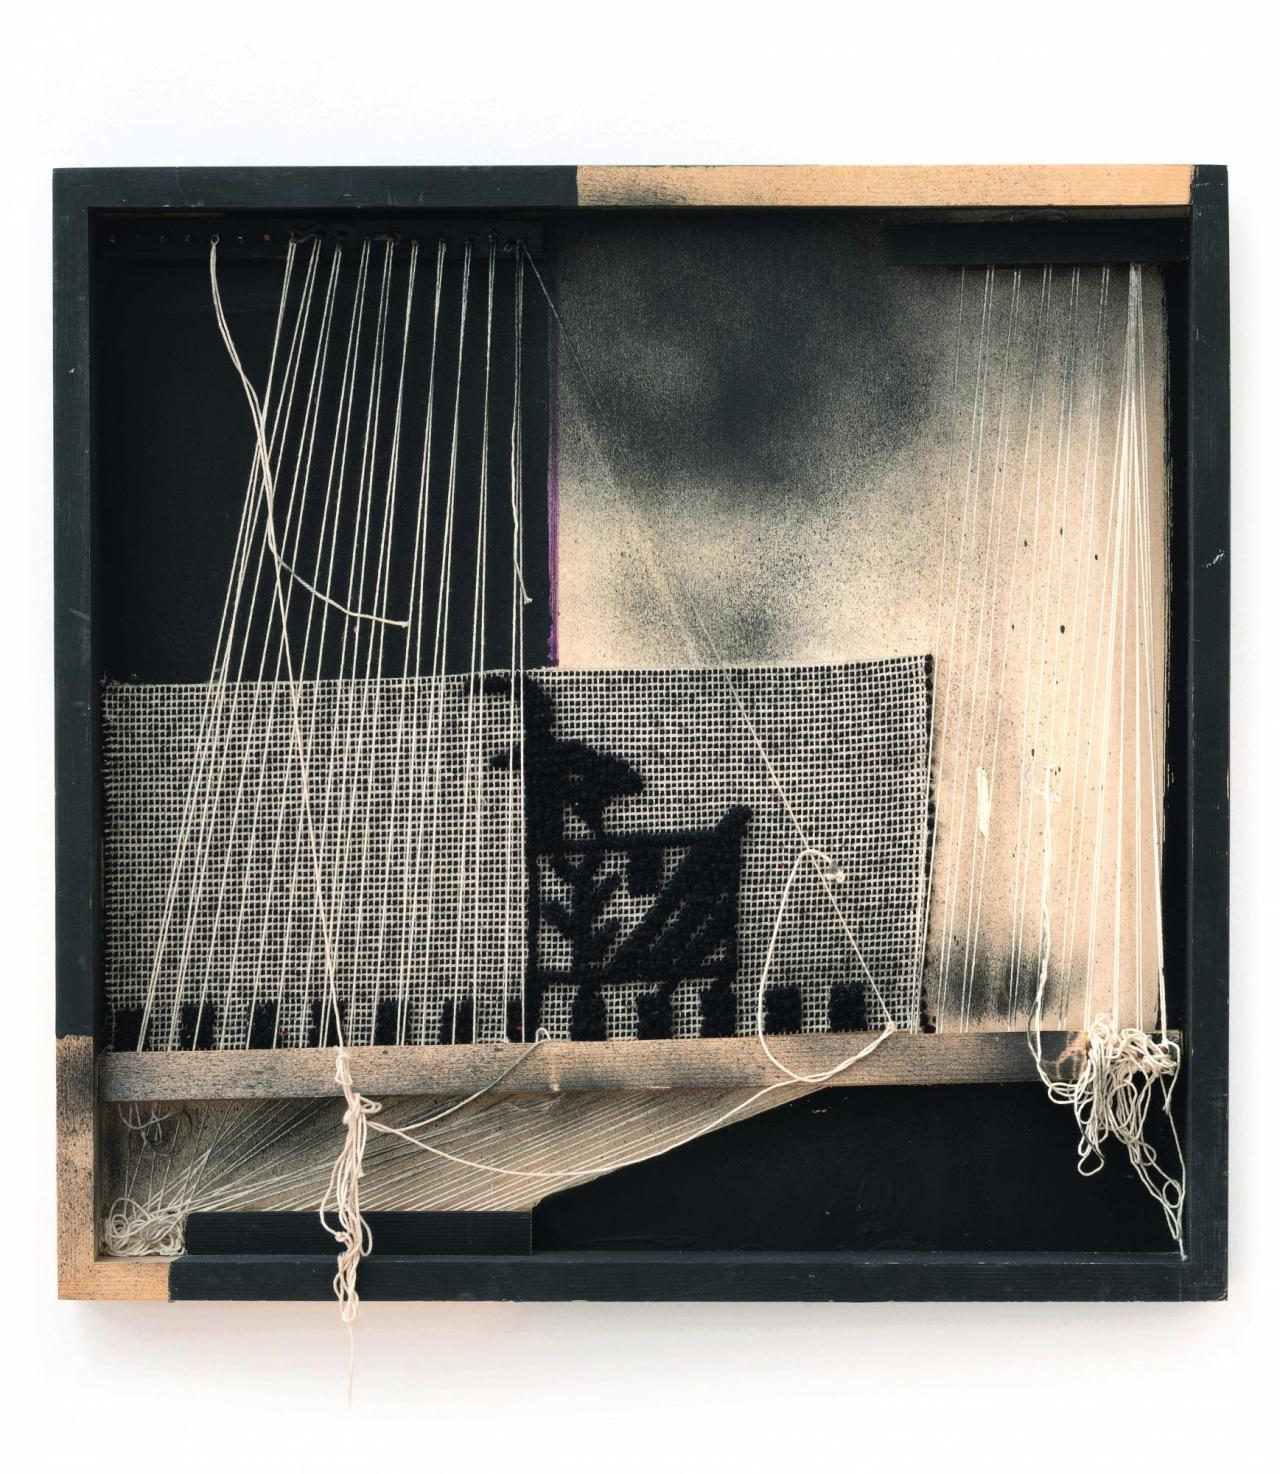 Maria Lai,  Senza titolo , 2009 Wood, thread, paint, cloth, wool, nails, 52 x 54 x 5.5 cm